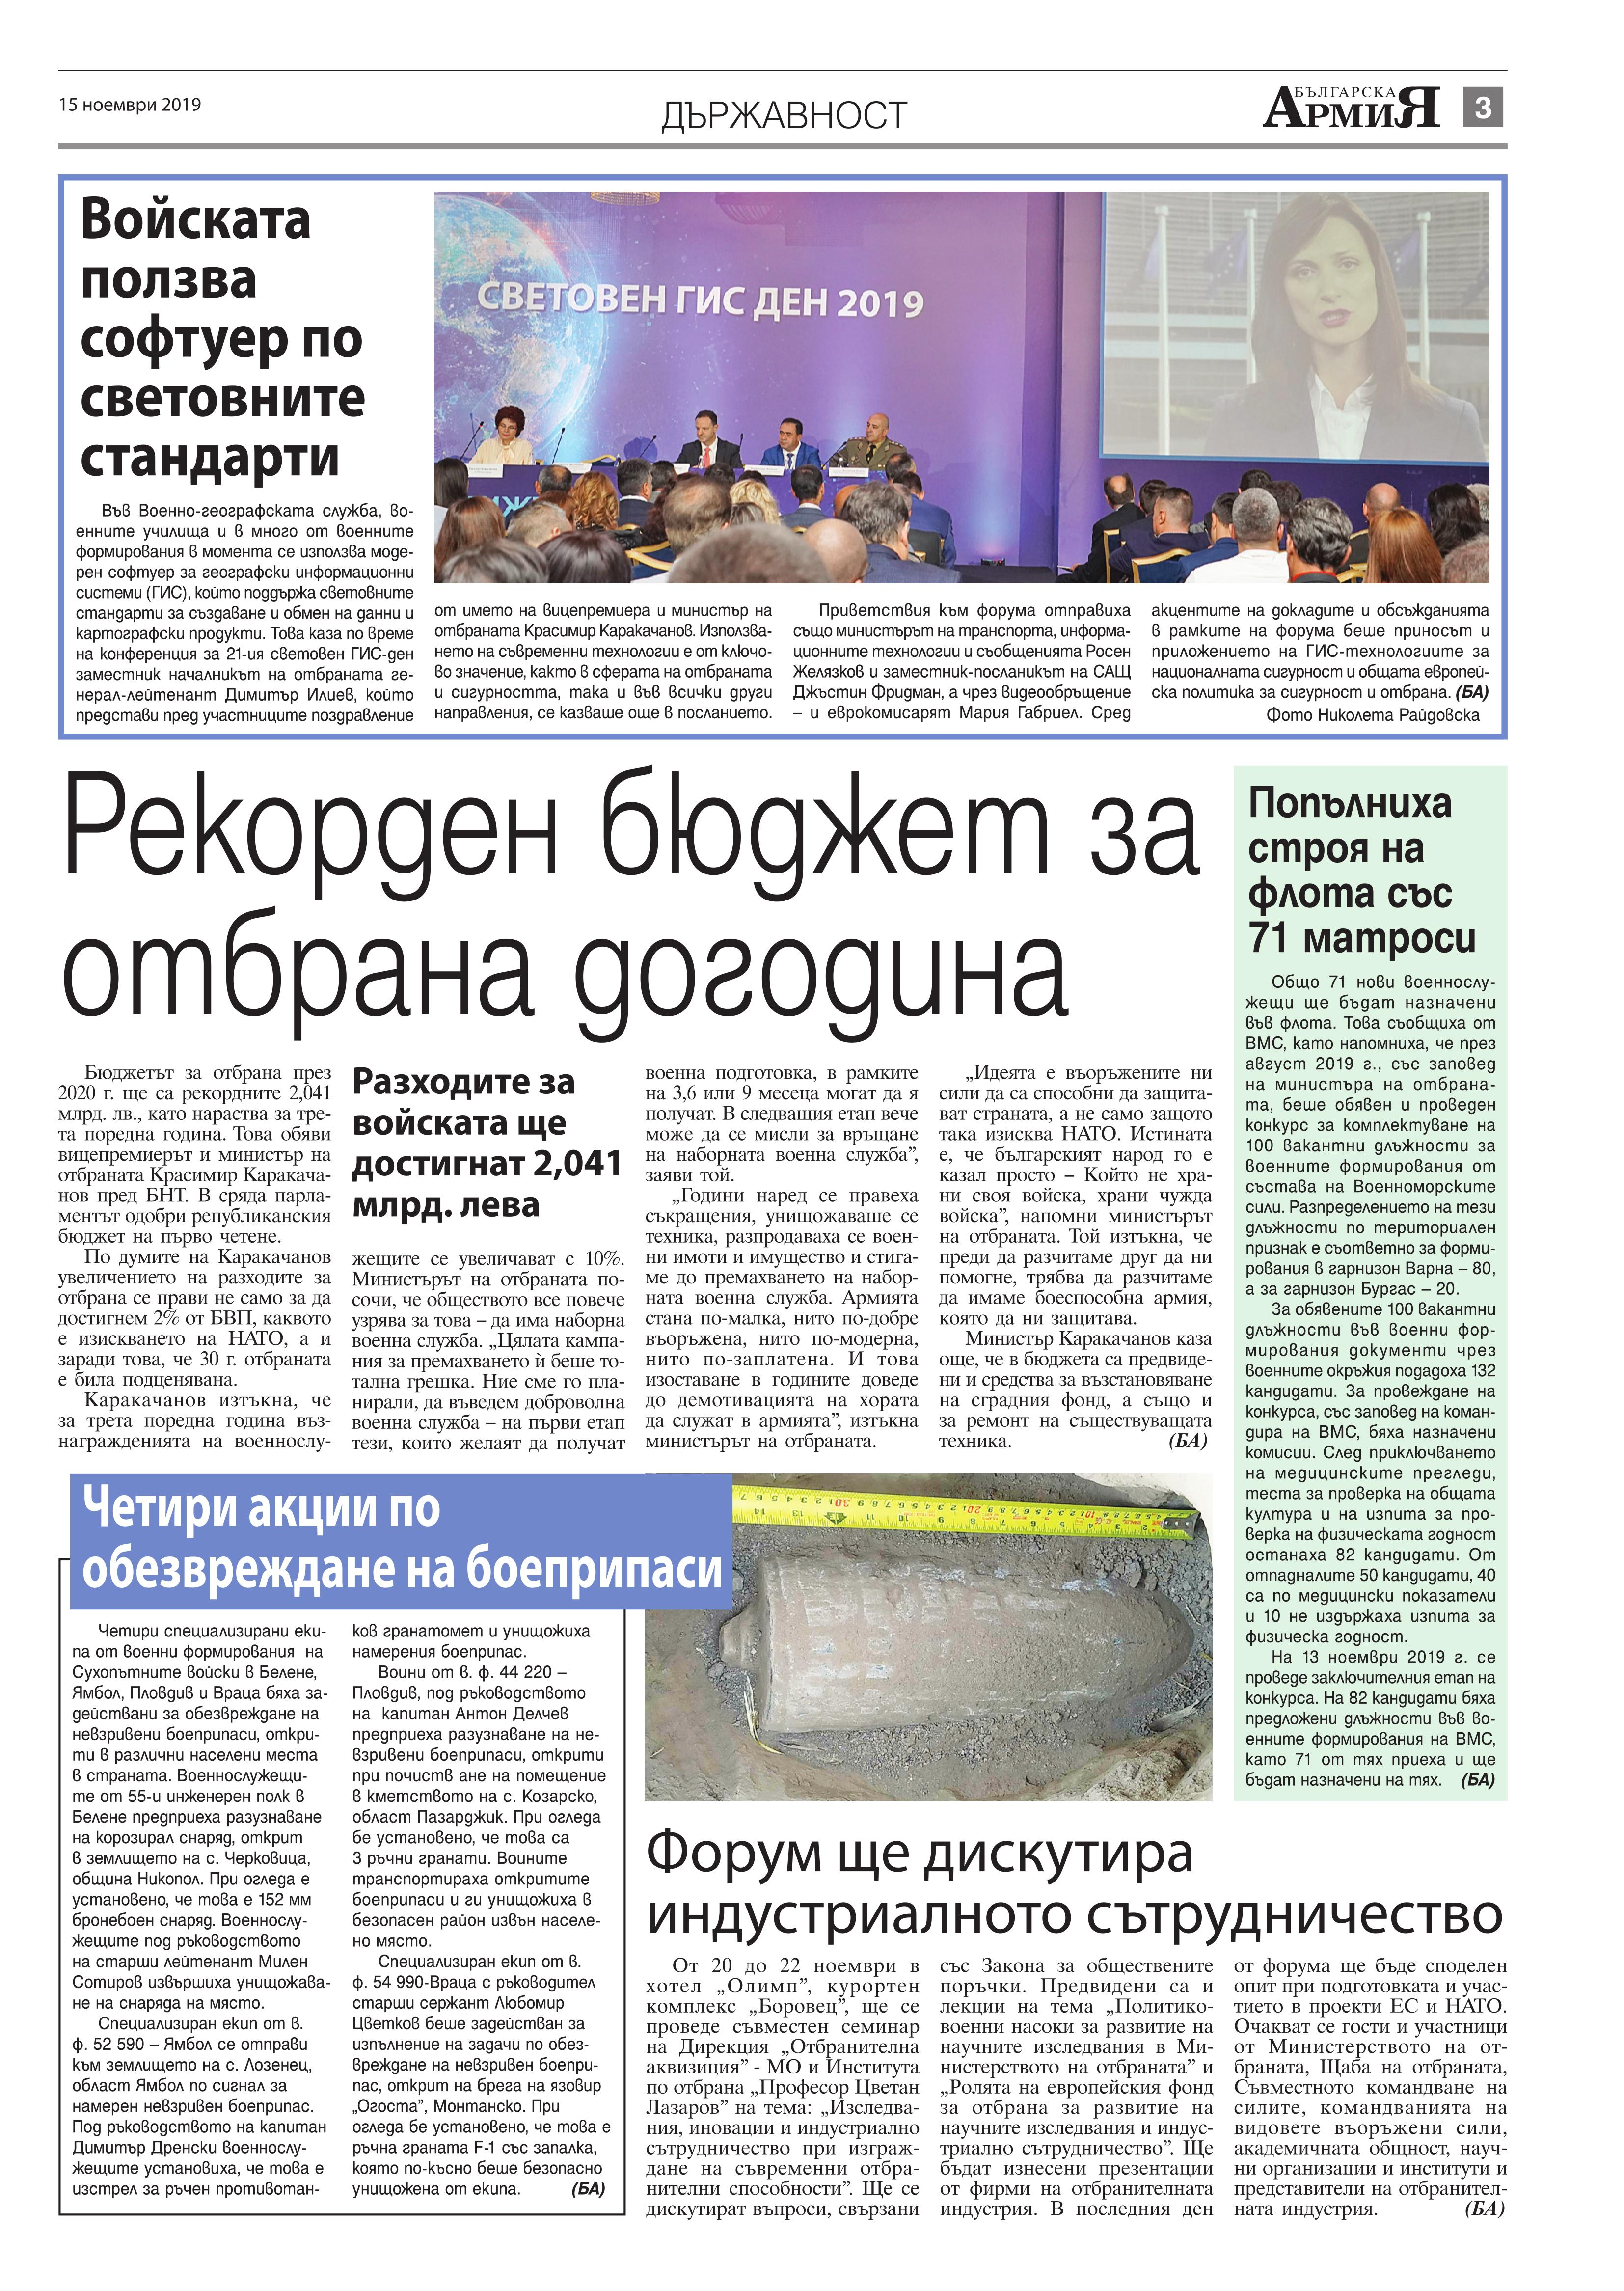 https://armymedia.bg/wp-content/uploads/2015/06/03.page1_-113.jpg